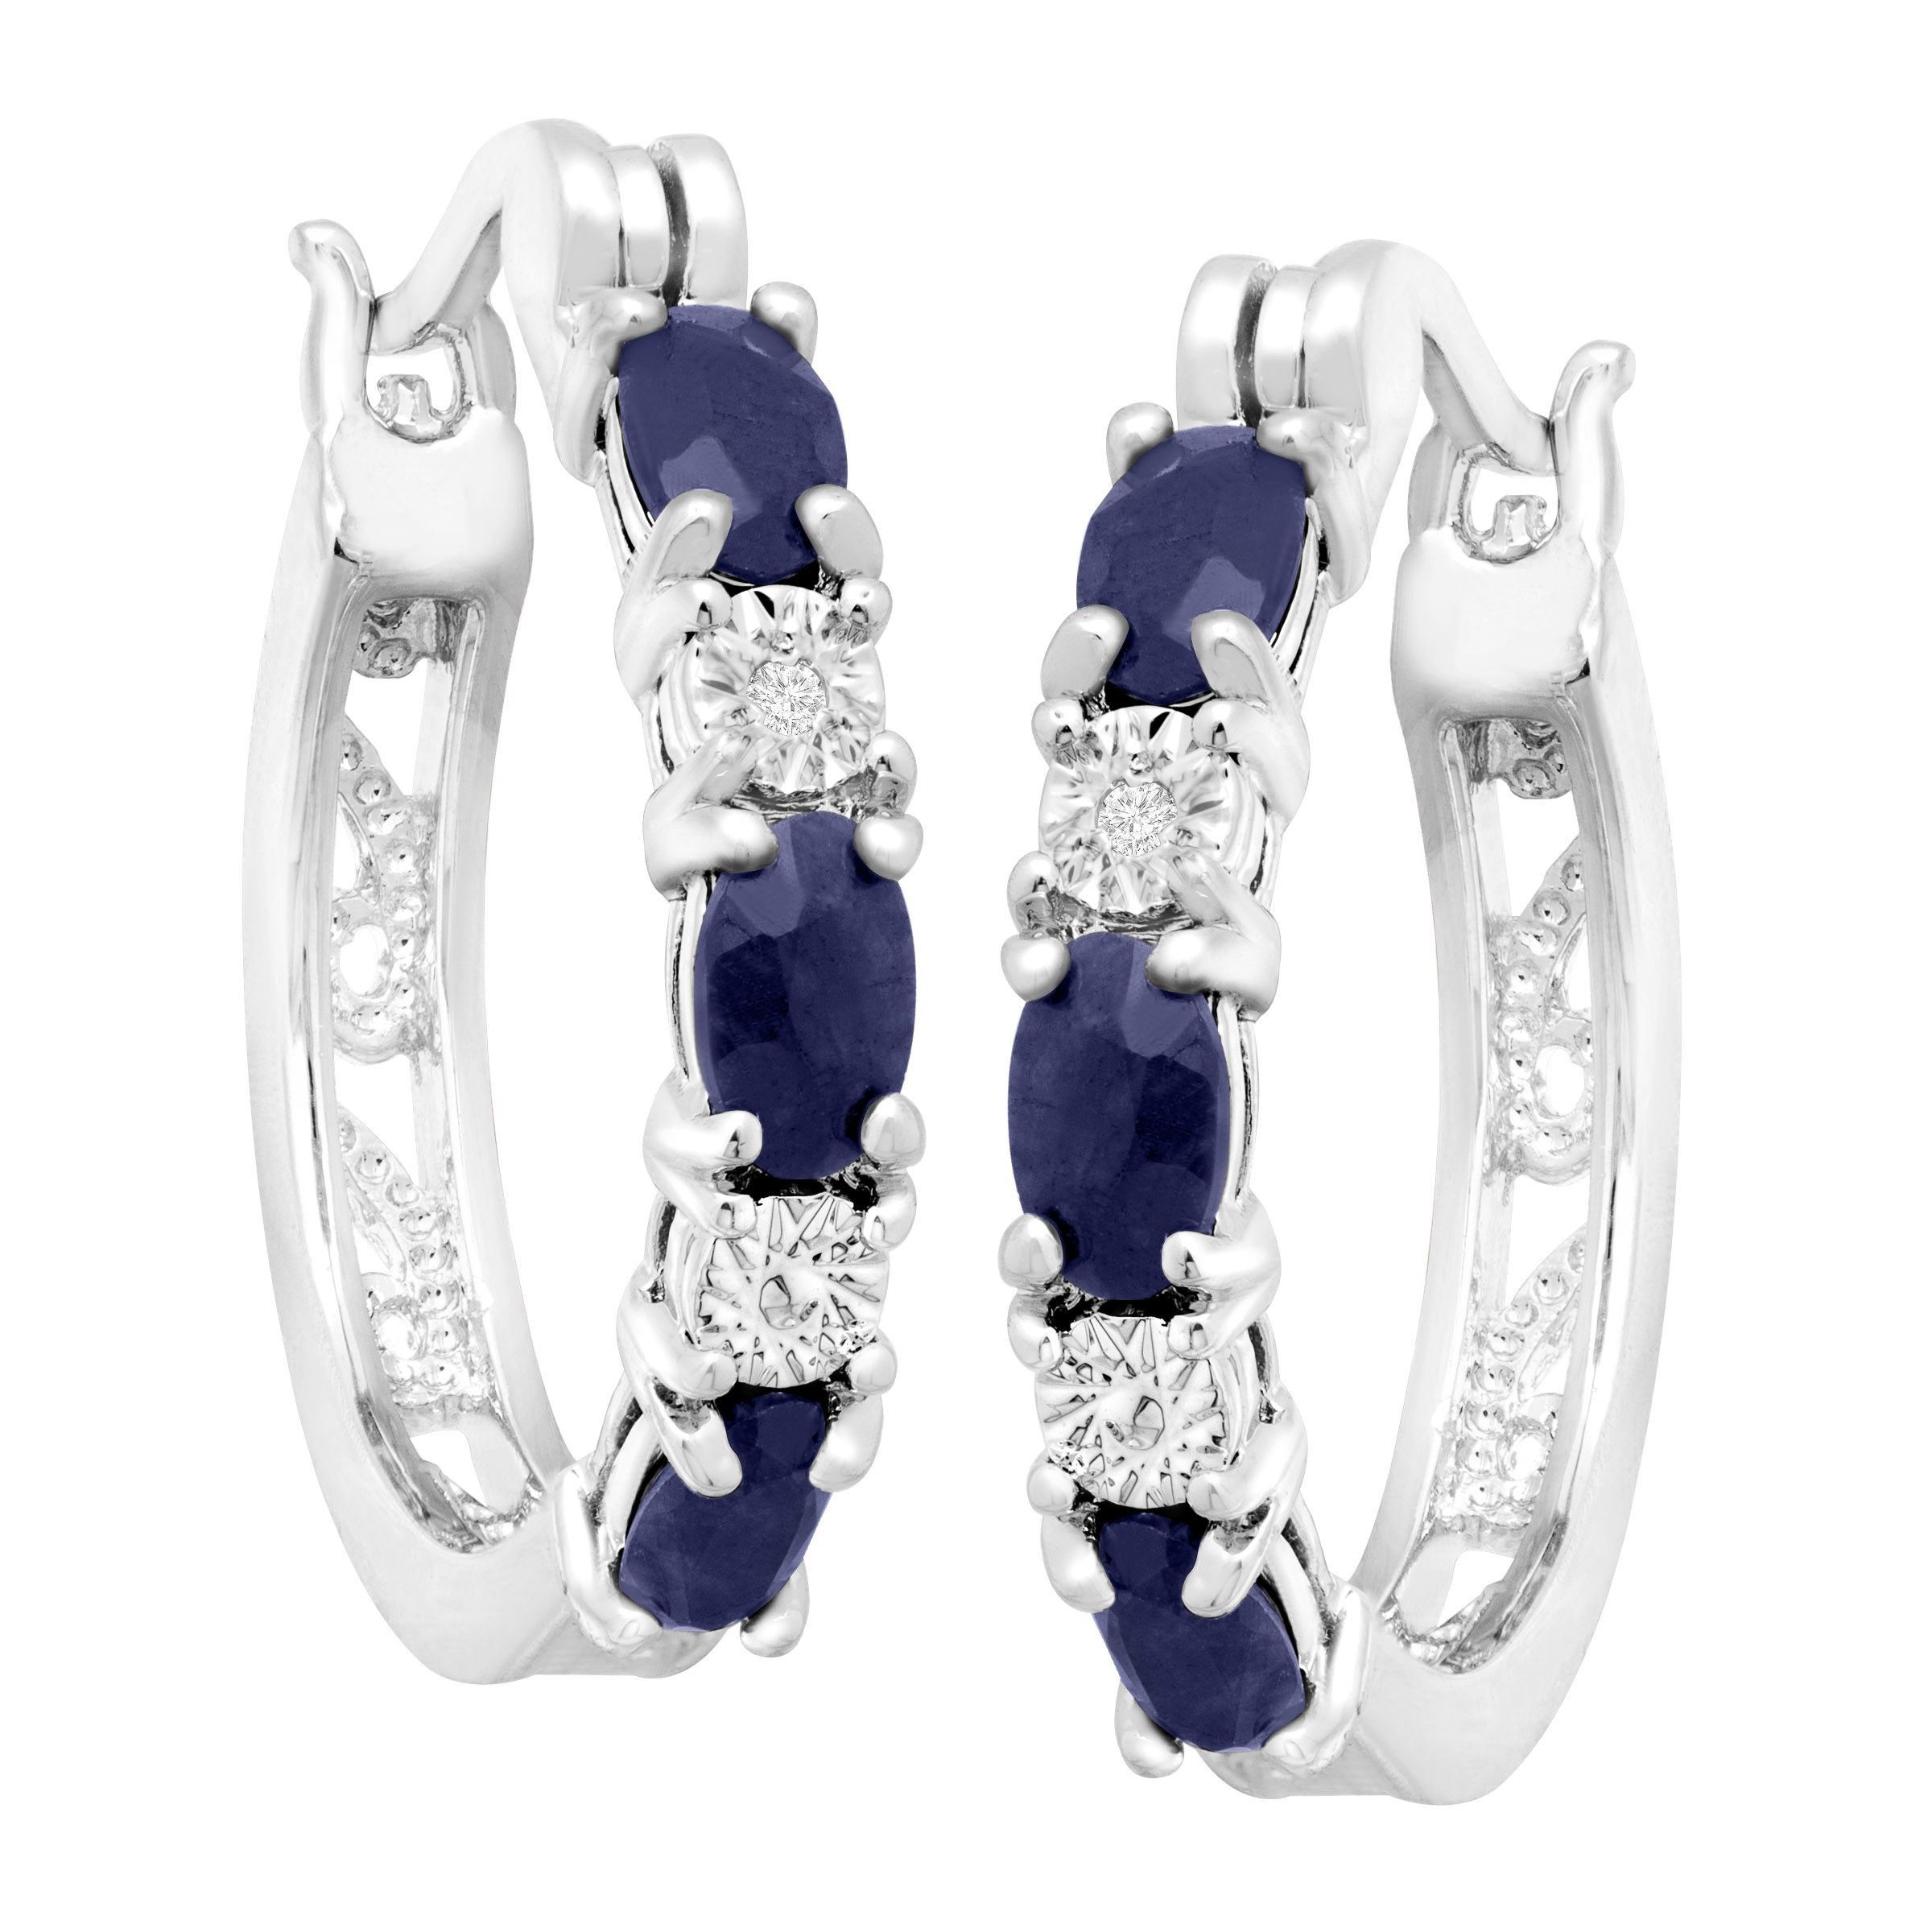 Gemstone-Hoop-Earrings-with-Diamonds-in-Platinum-Plated-Brass thumbnail 14